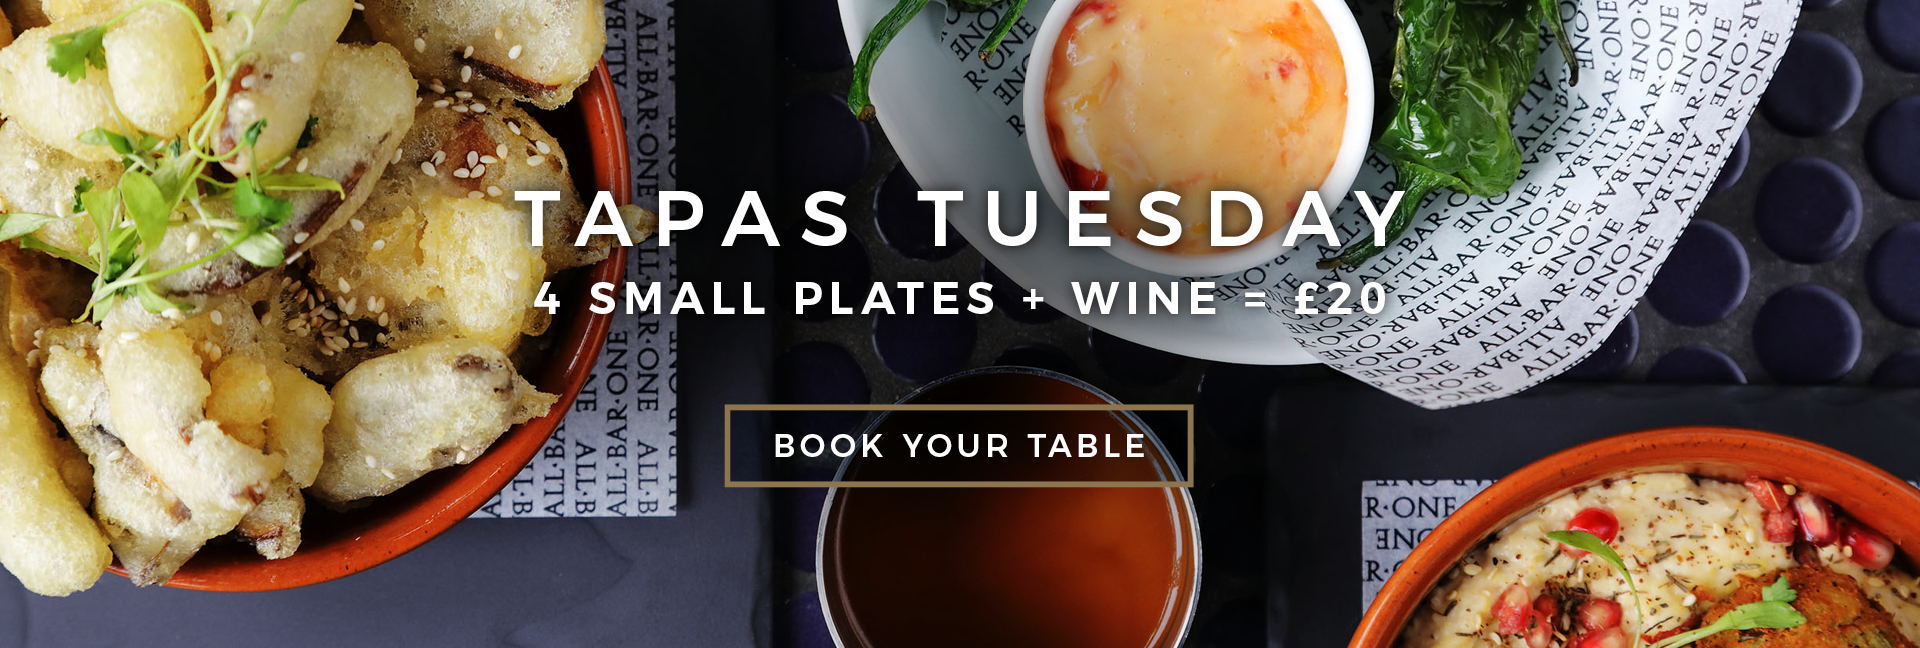 Tapas Tuesday at All Bar One New Street Station - Book now